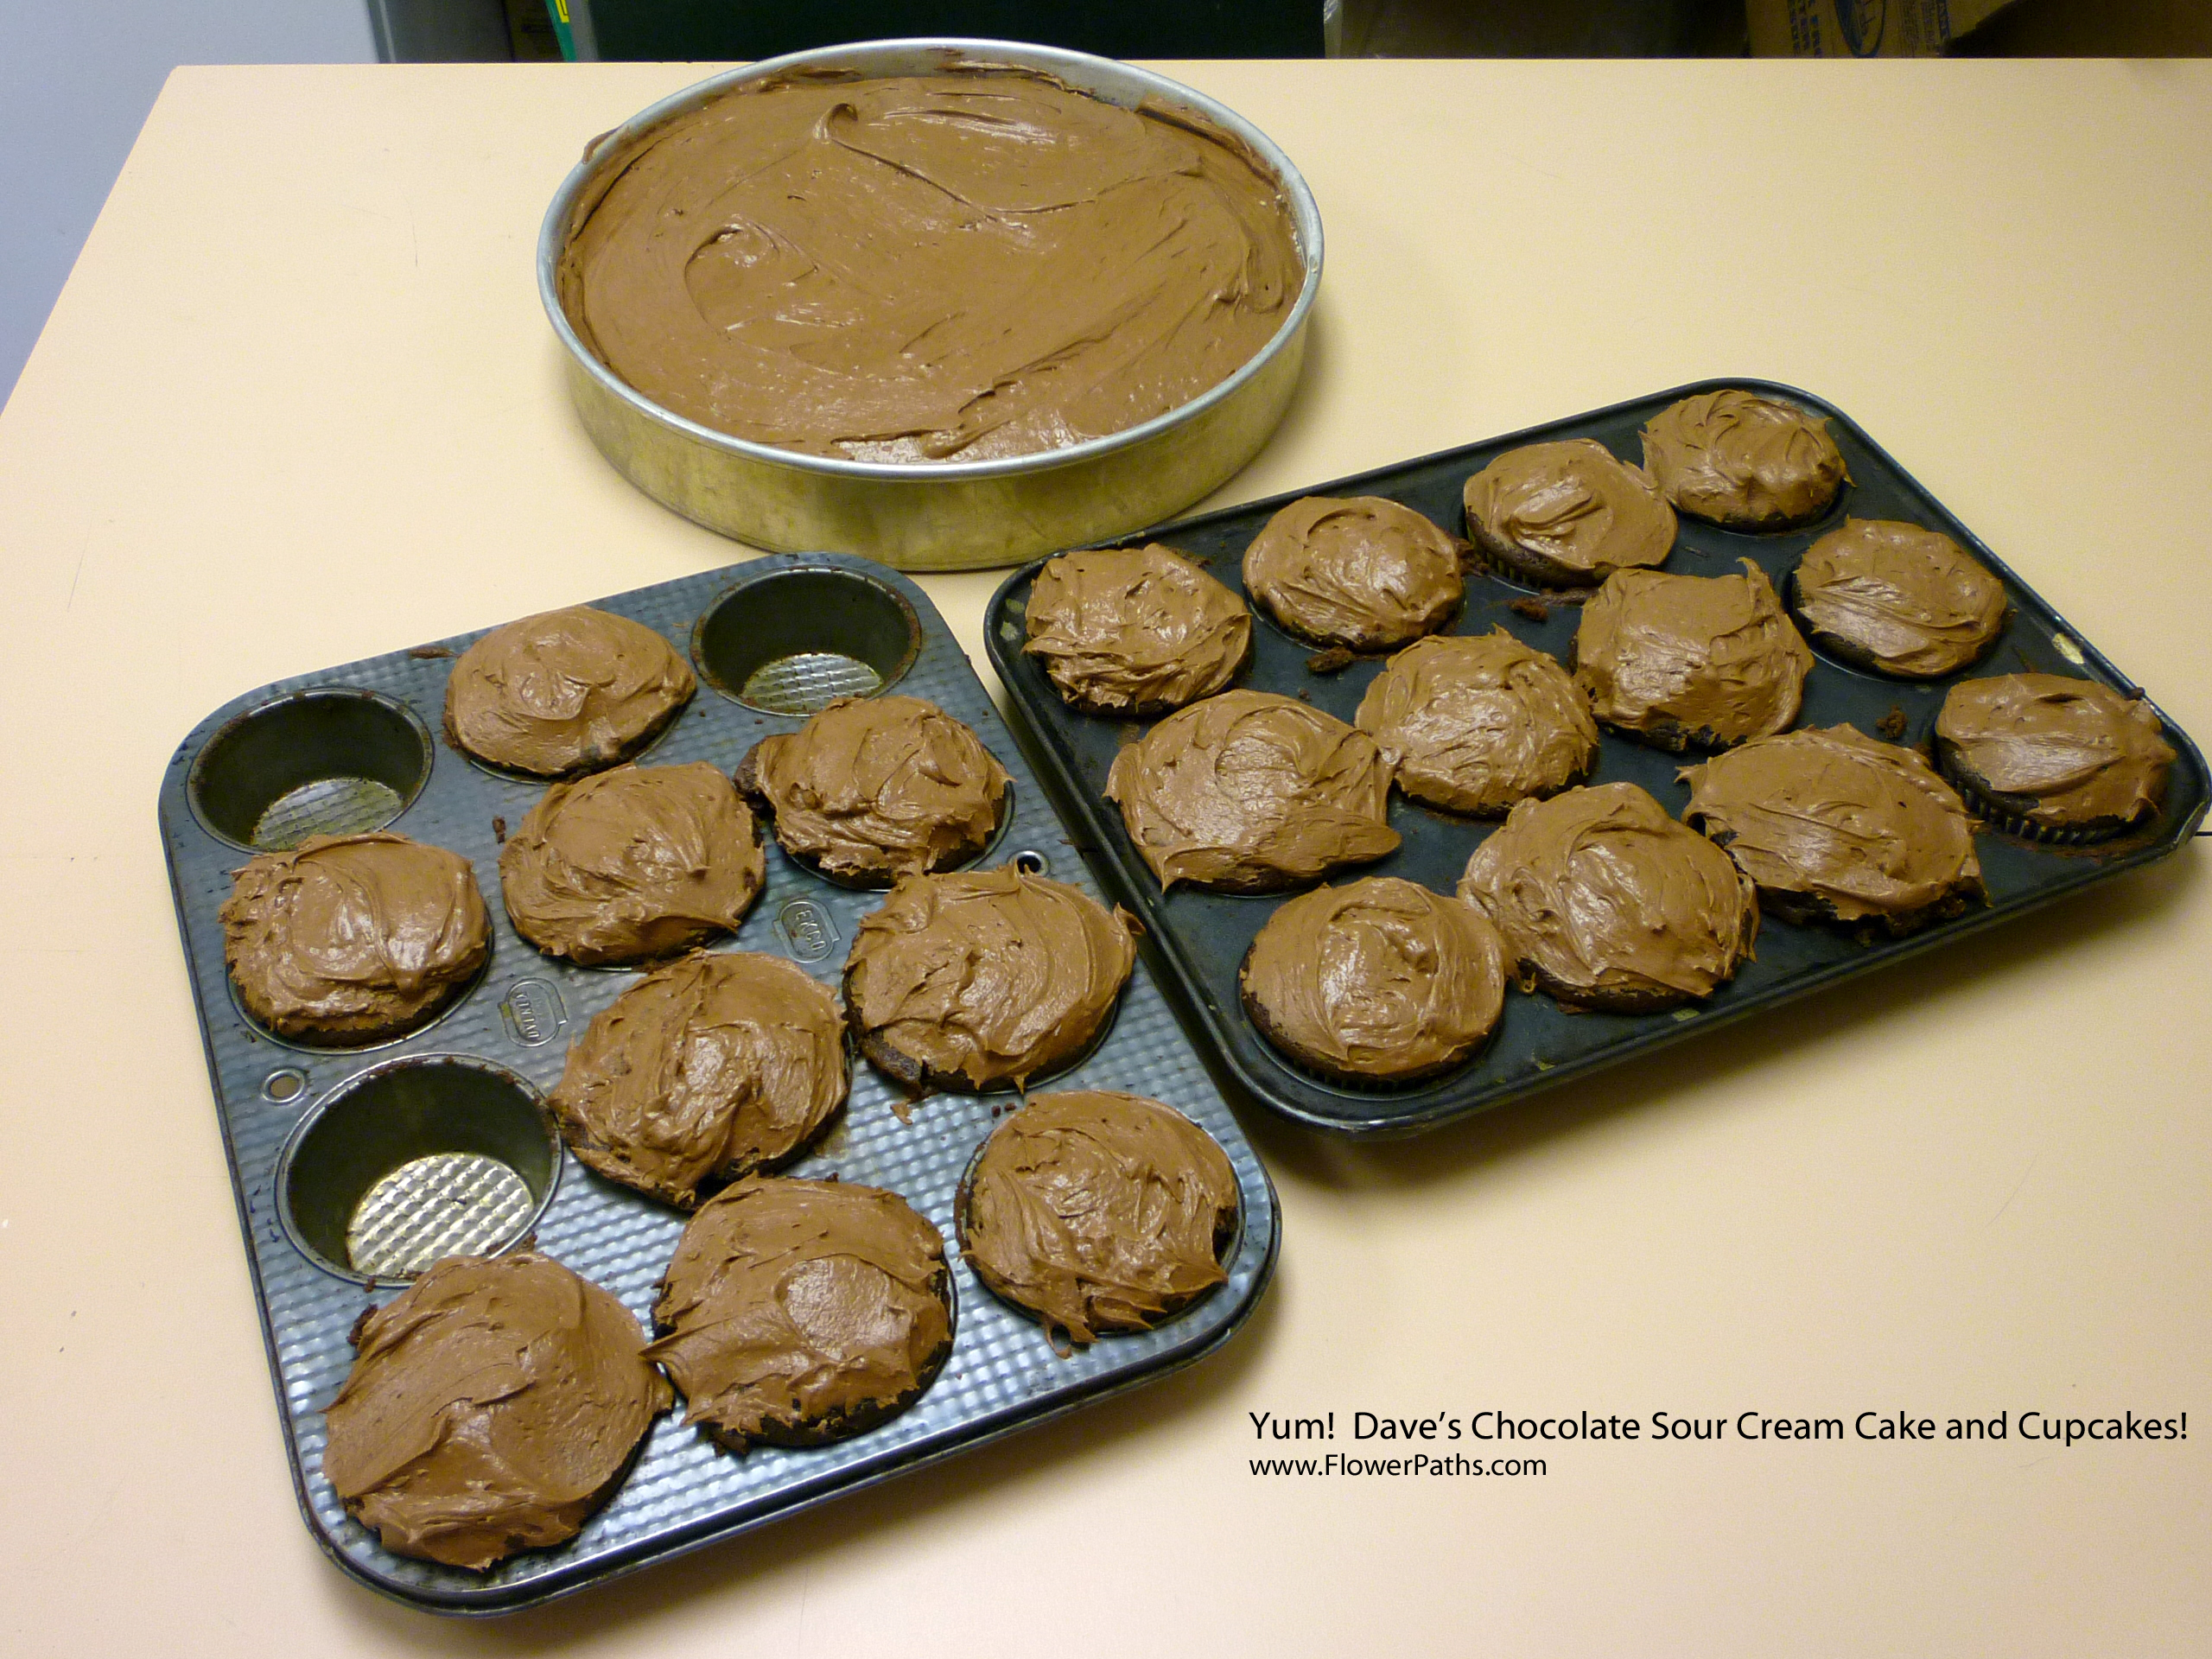 Dave's Easiest Yummy Sour Cream Chocolate Cake and Cupcakes – So Easy and So Good!